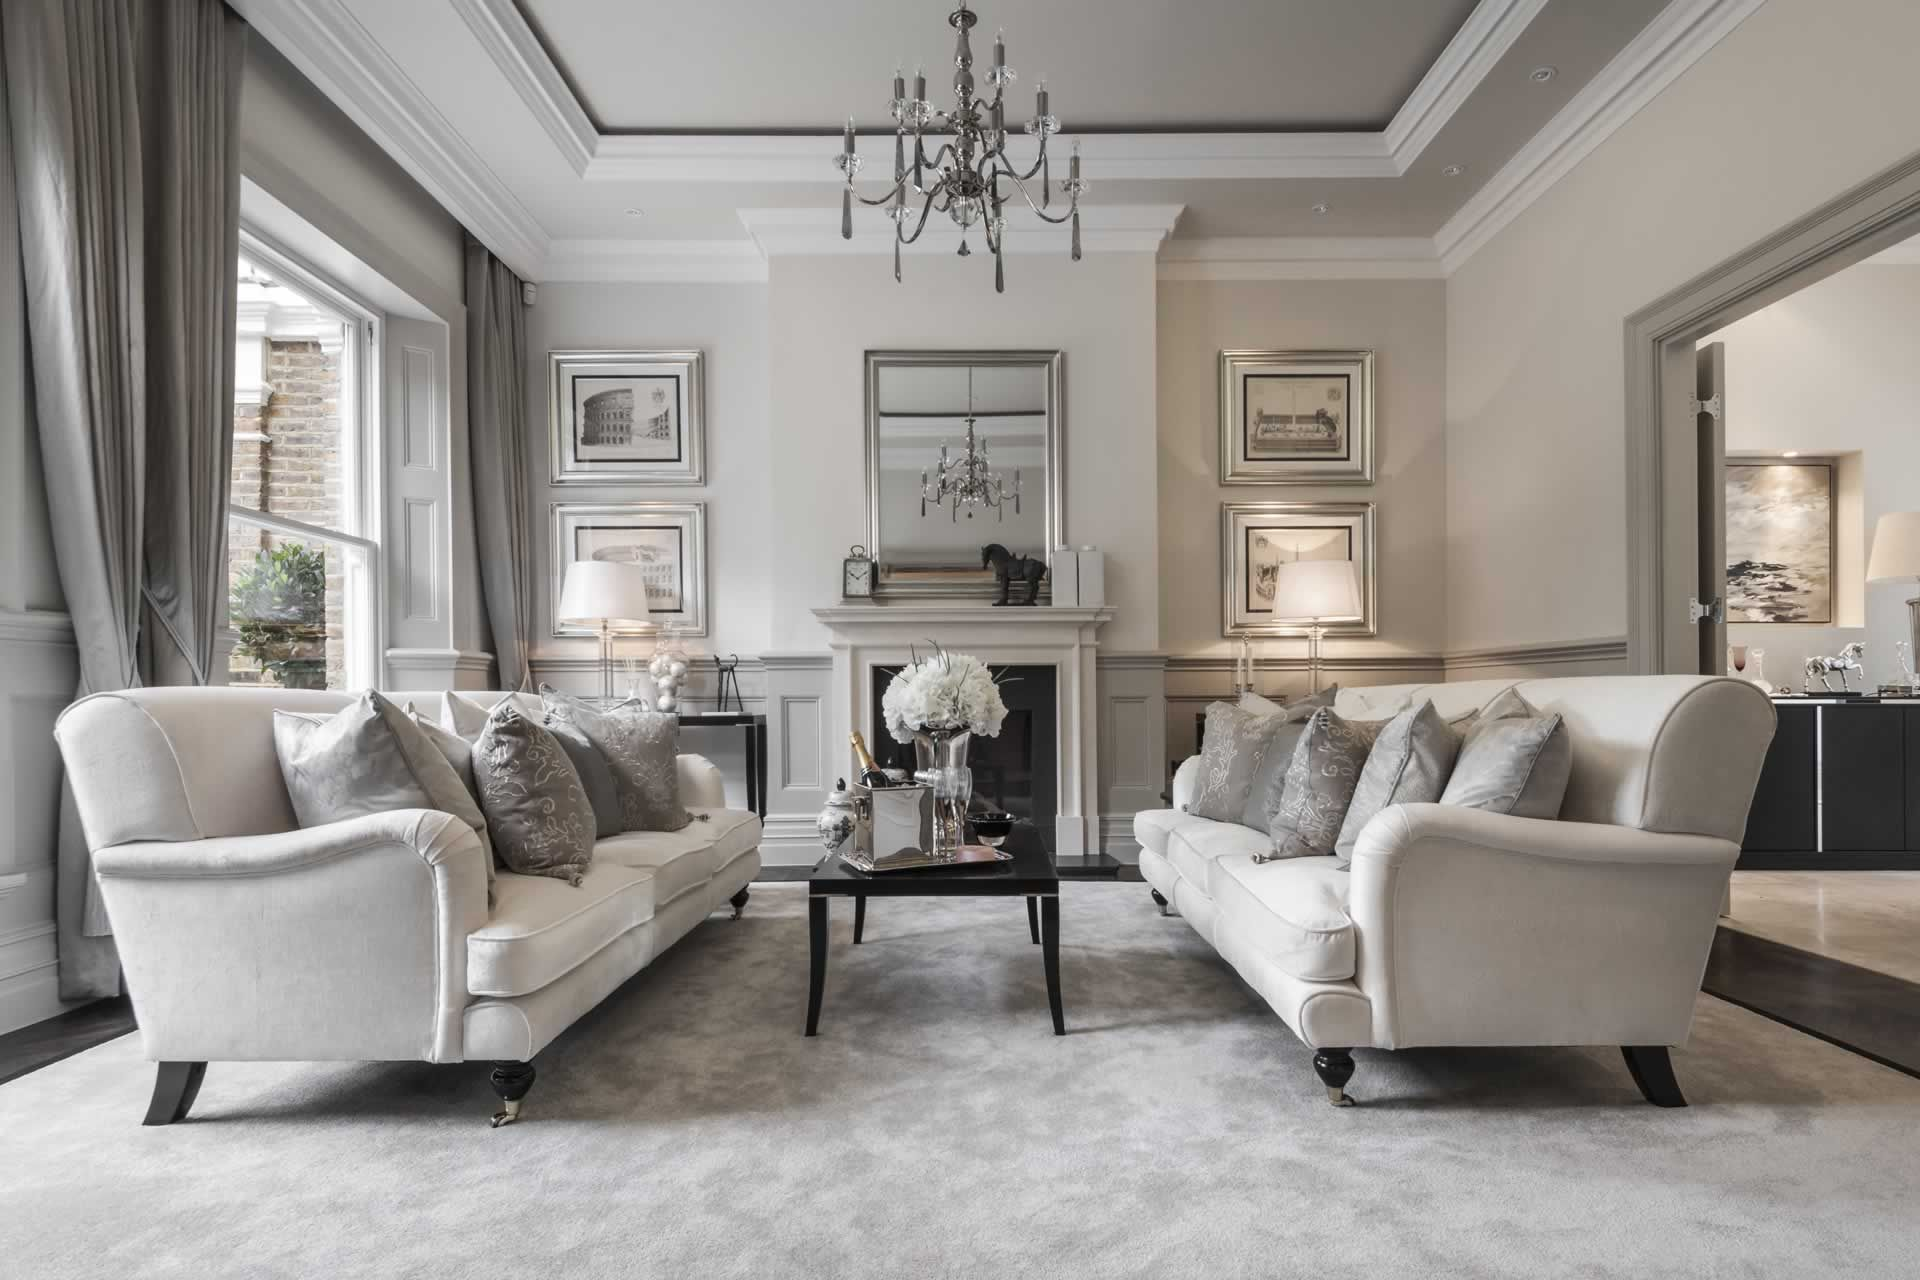 alexander james interiors carry out a full range of